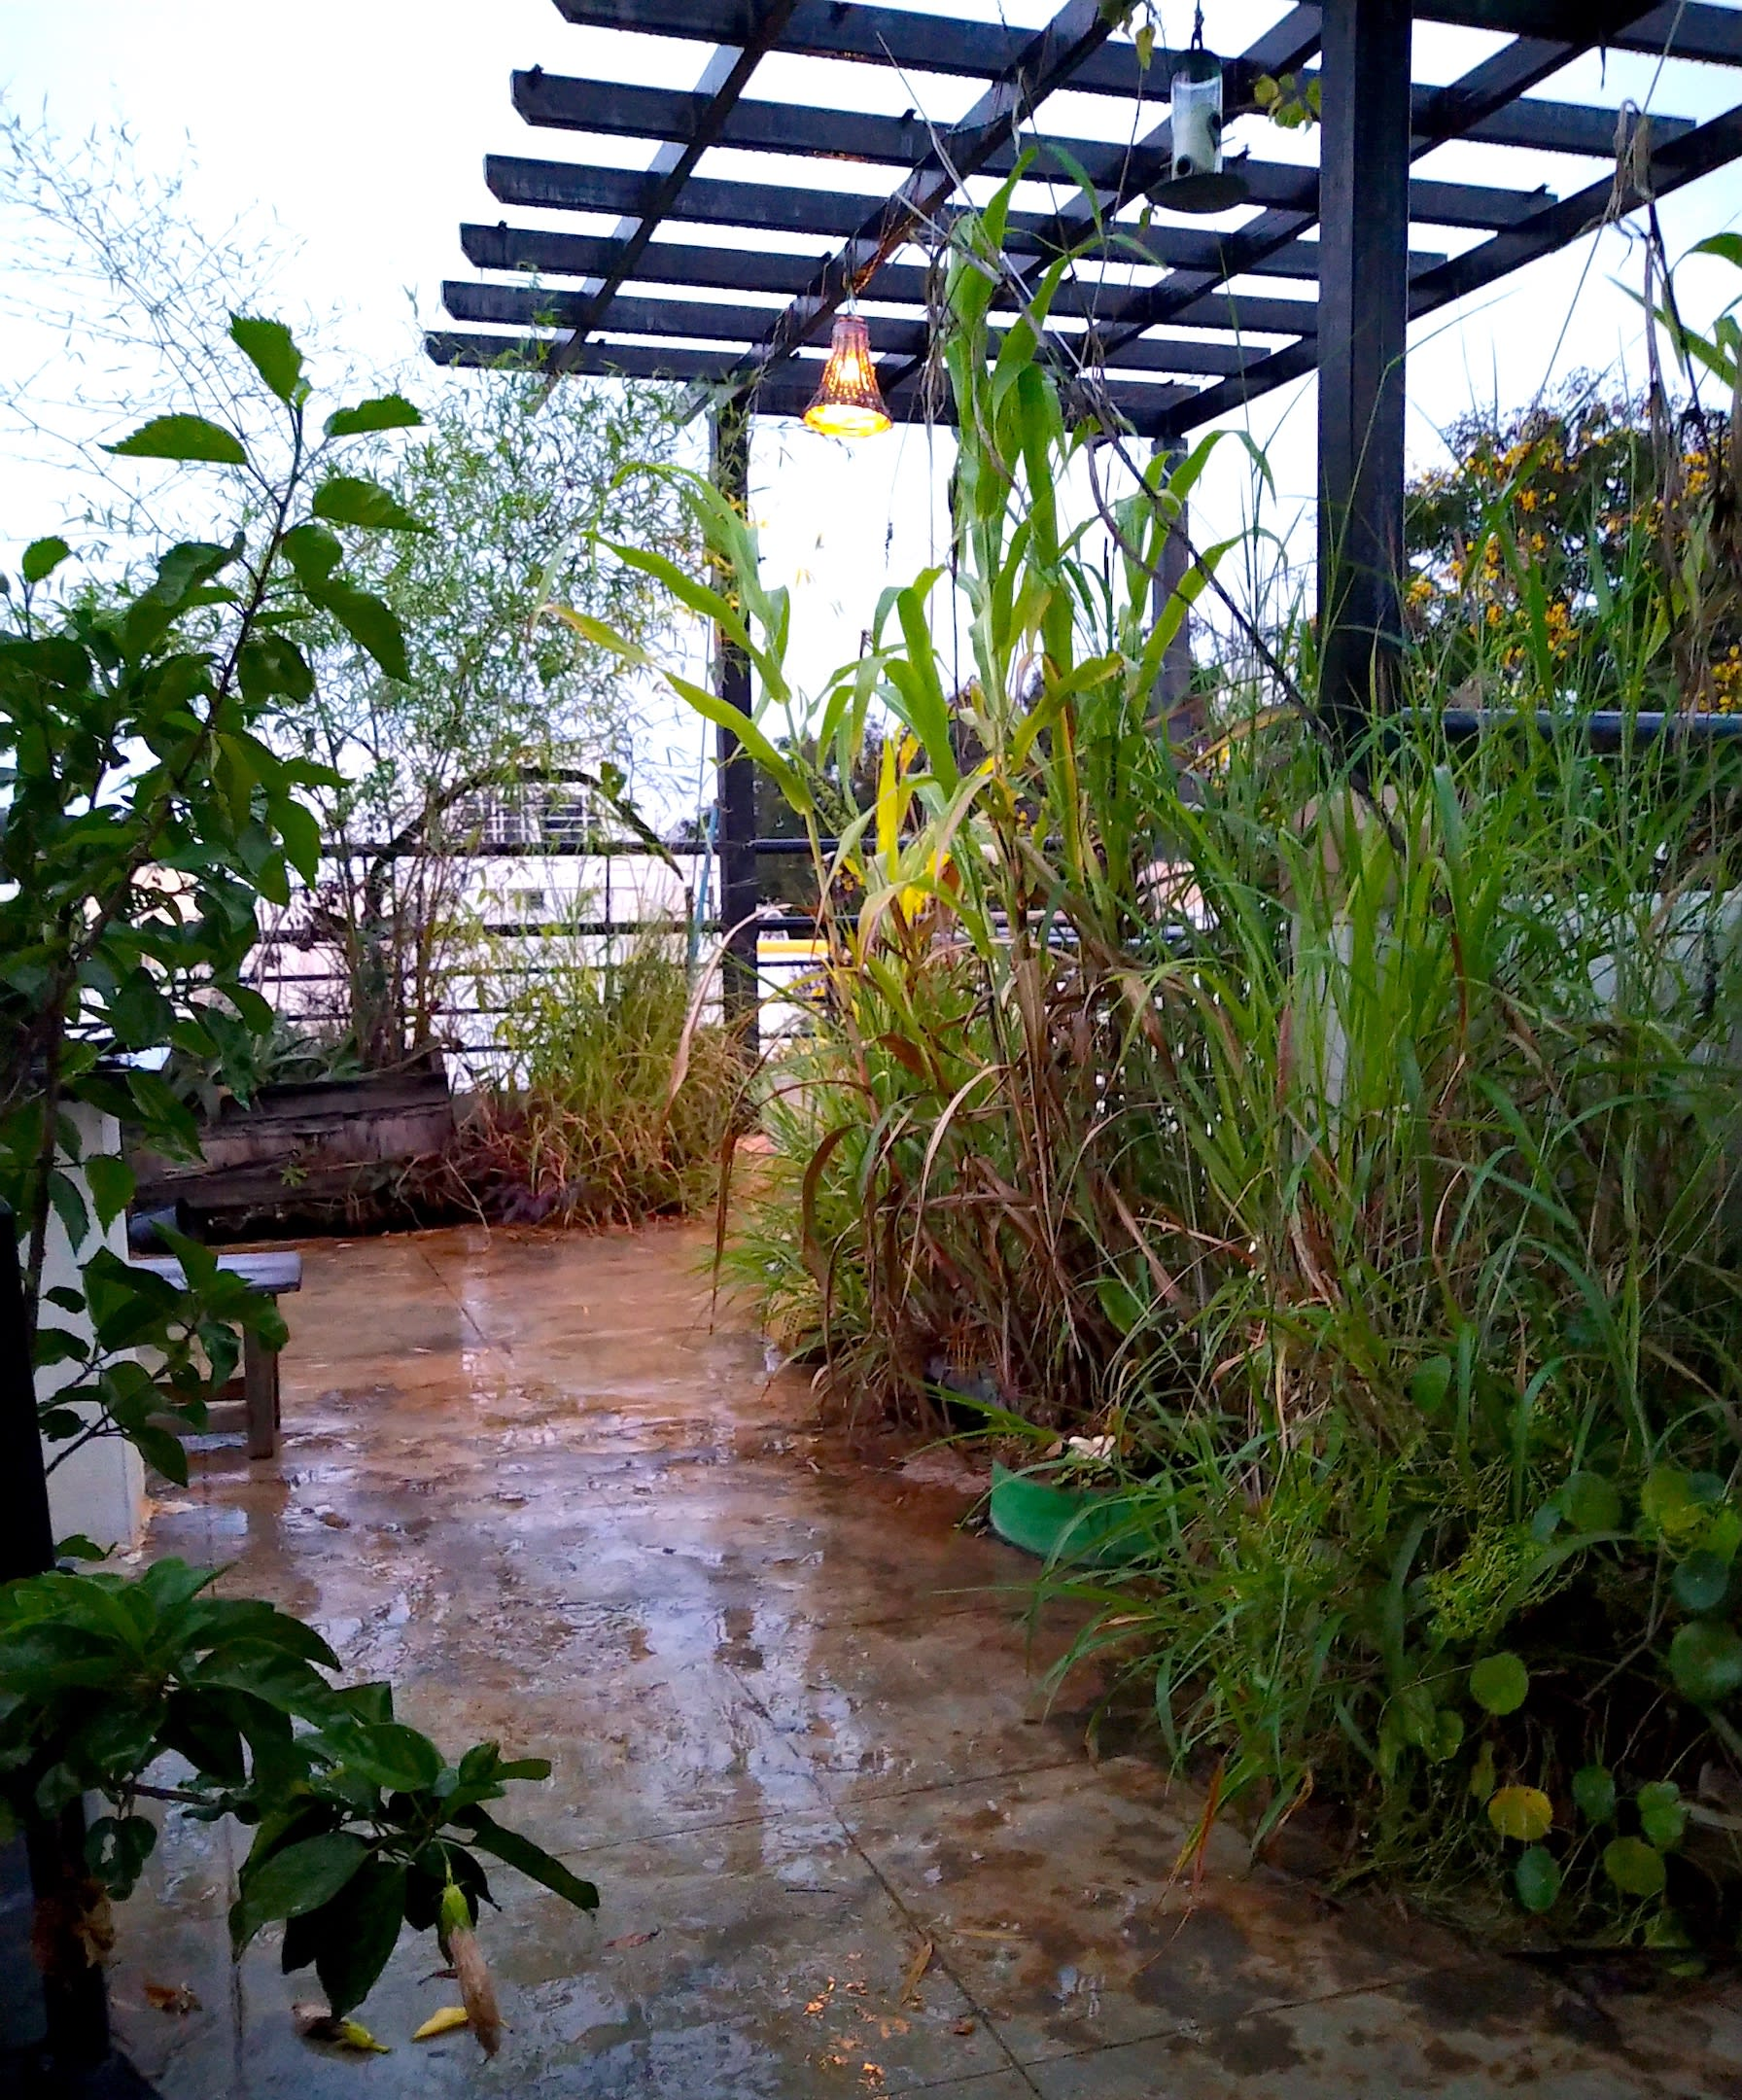 Native bamboo and wild sorghum dominate the terrace garden along with an assortment of other grasses. Photo: Nisarg Prakash  Cover photo:  These ephemeral fungi appear only during the humid weather of the monsoon. They disperse spores with the falling rain and disappear as the weather turns dry, only to reappear again with the next monsoon. Cover photo: Nisarg Prakash